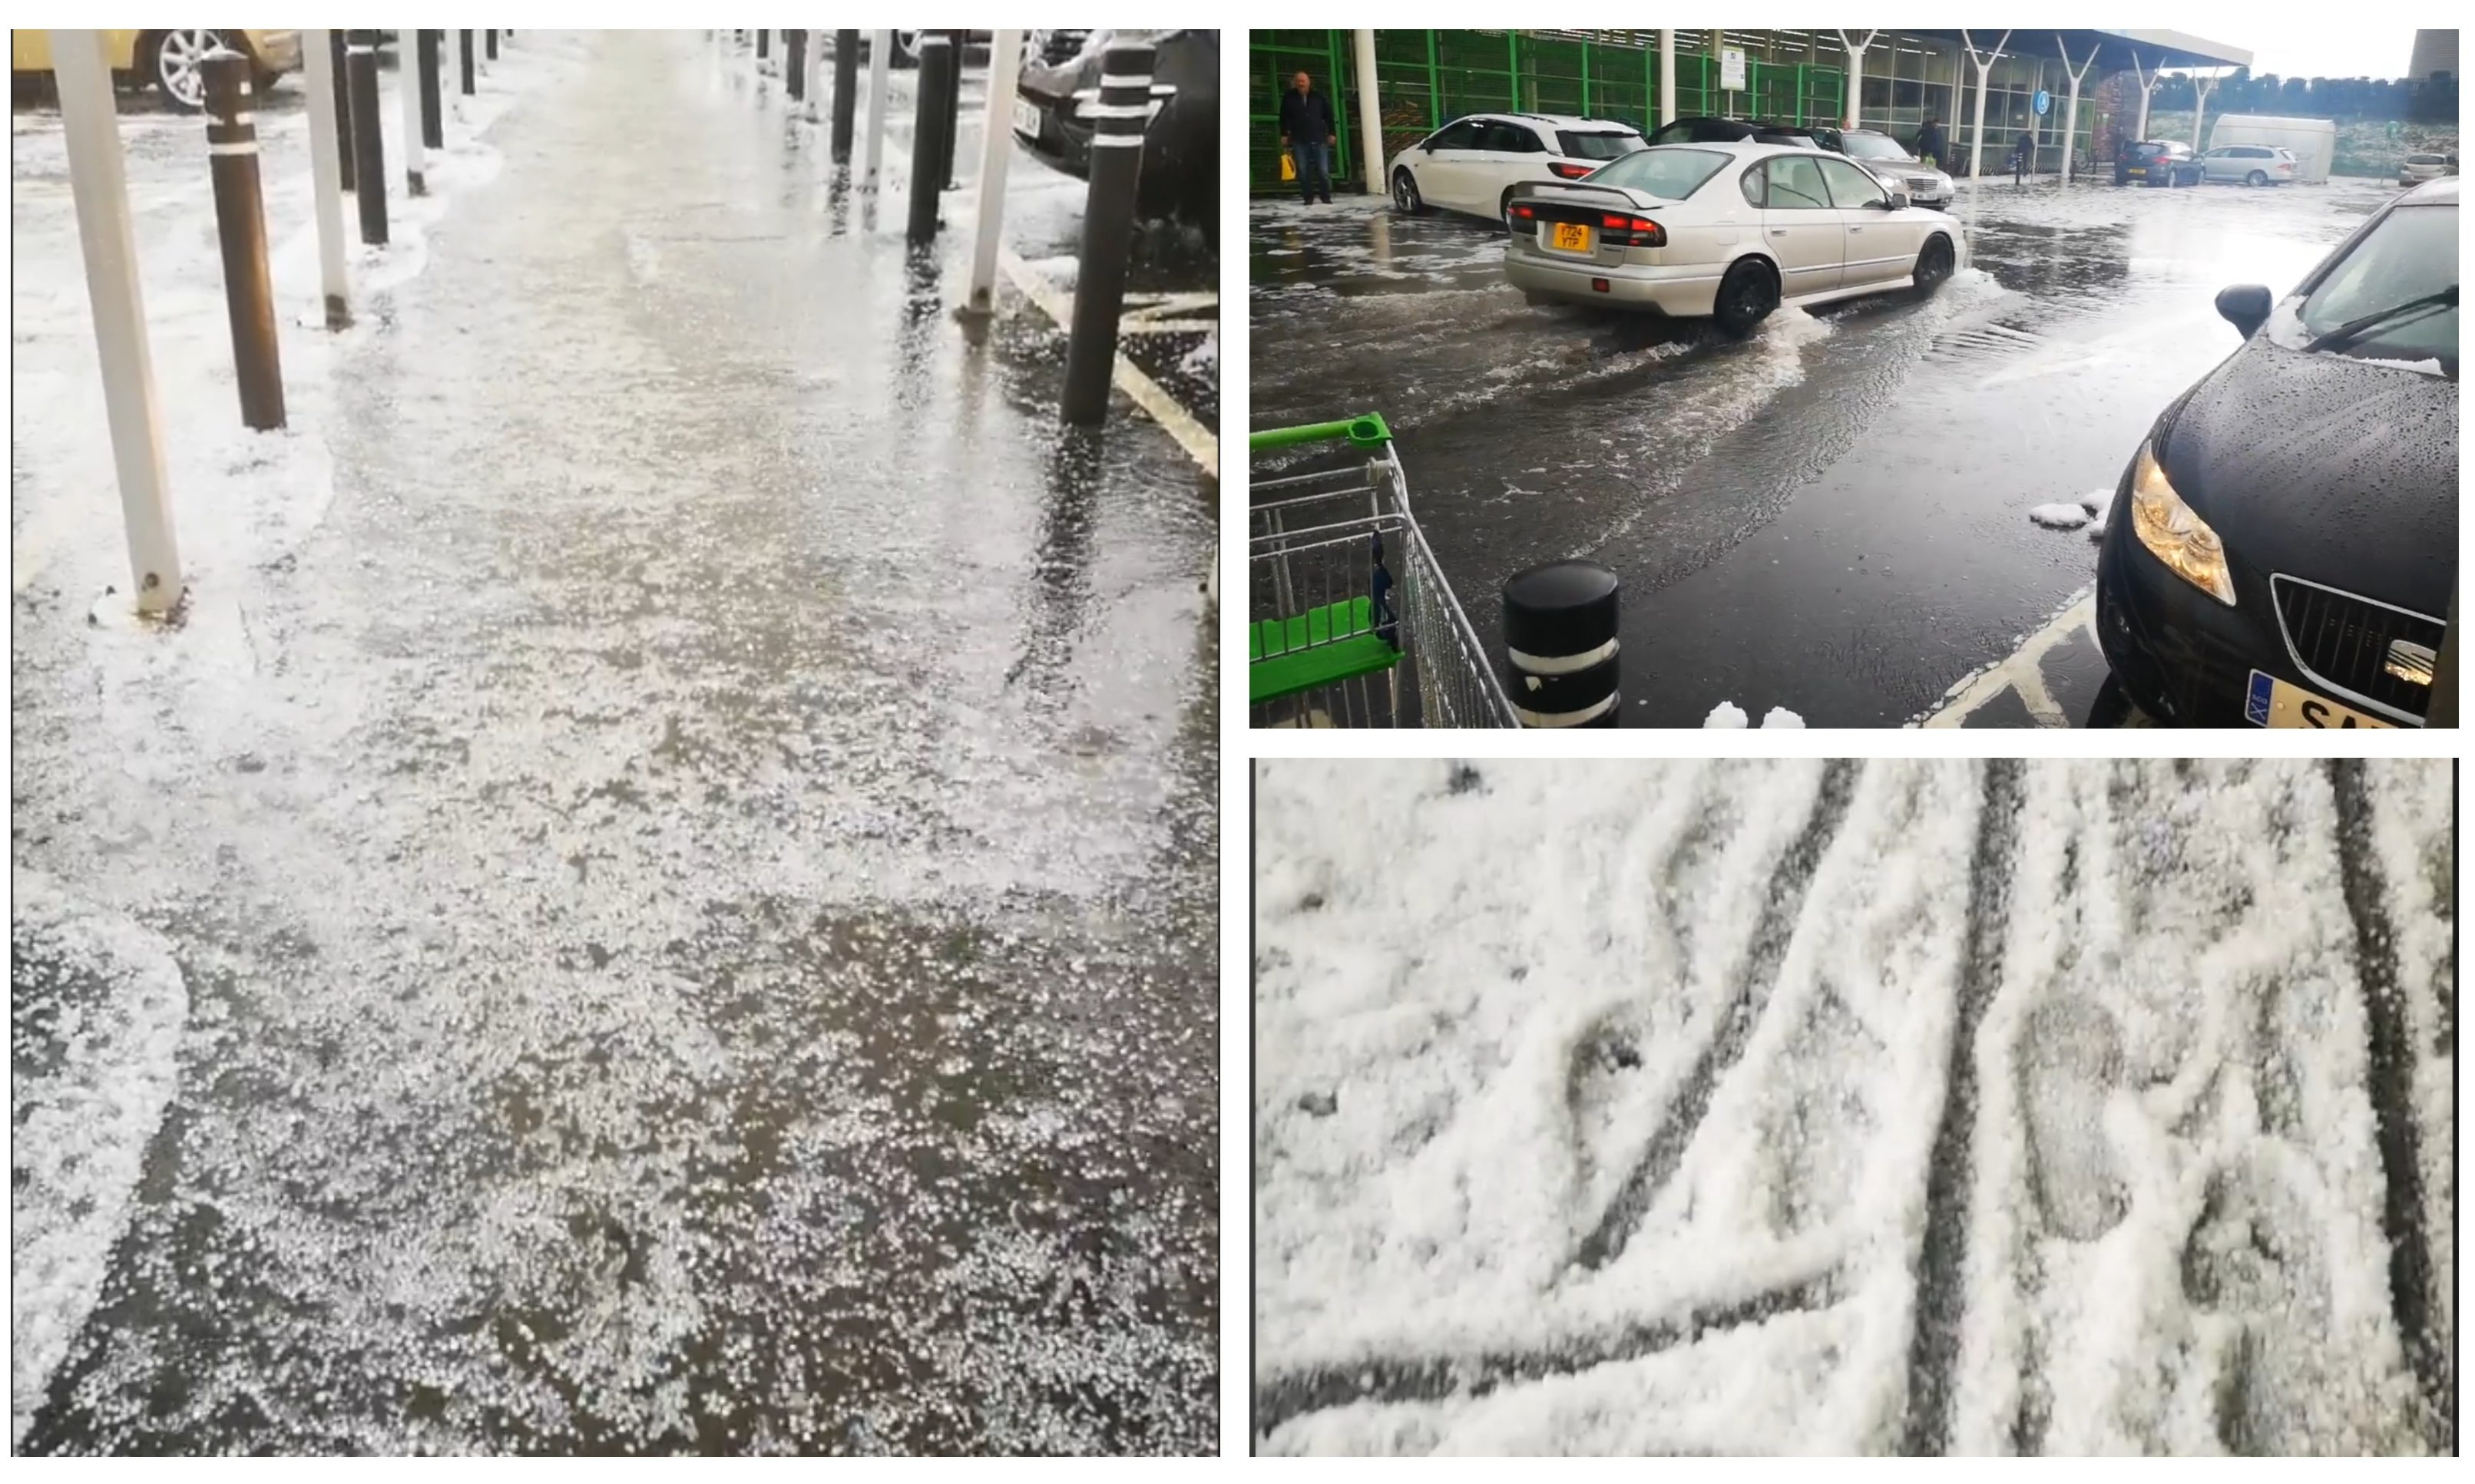 The hailstorm hit Glenrothes on Tuesday.